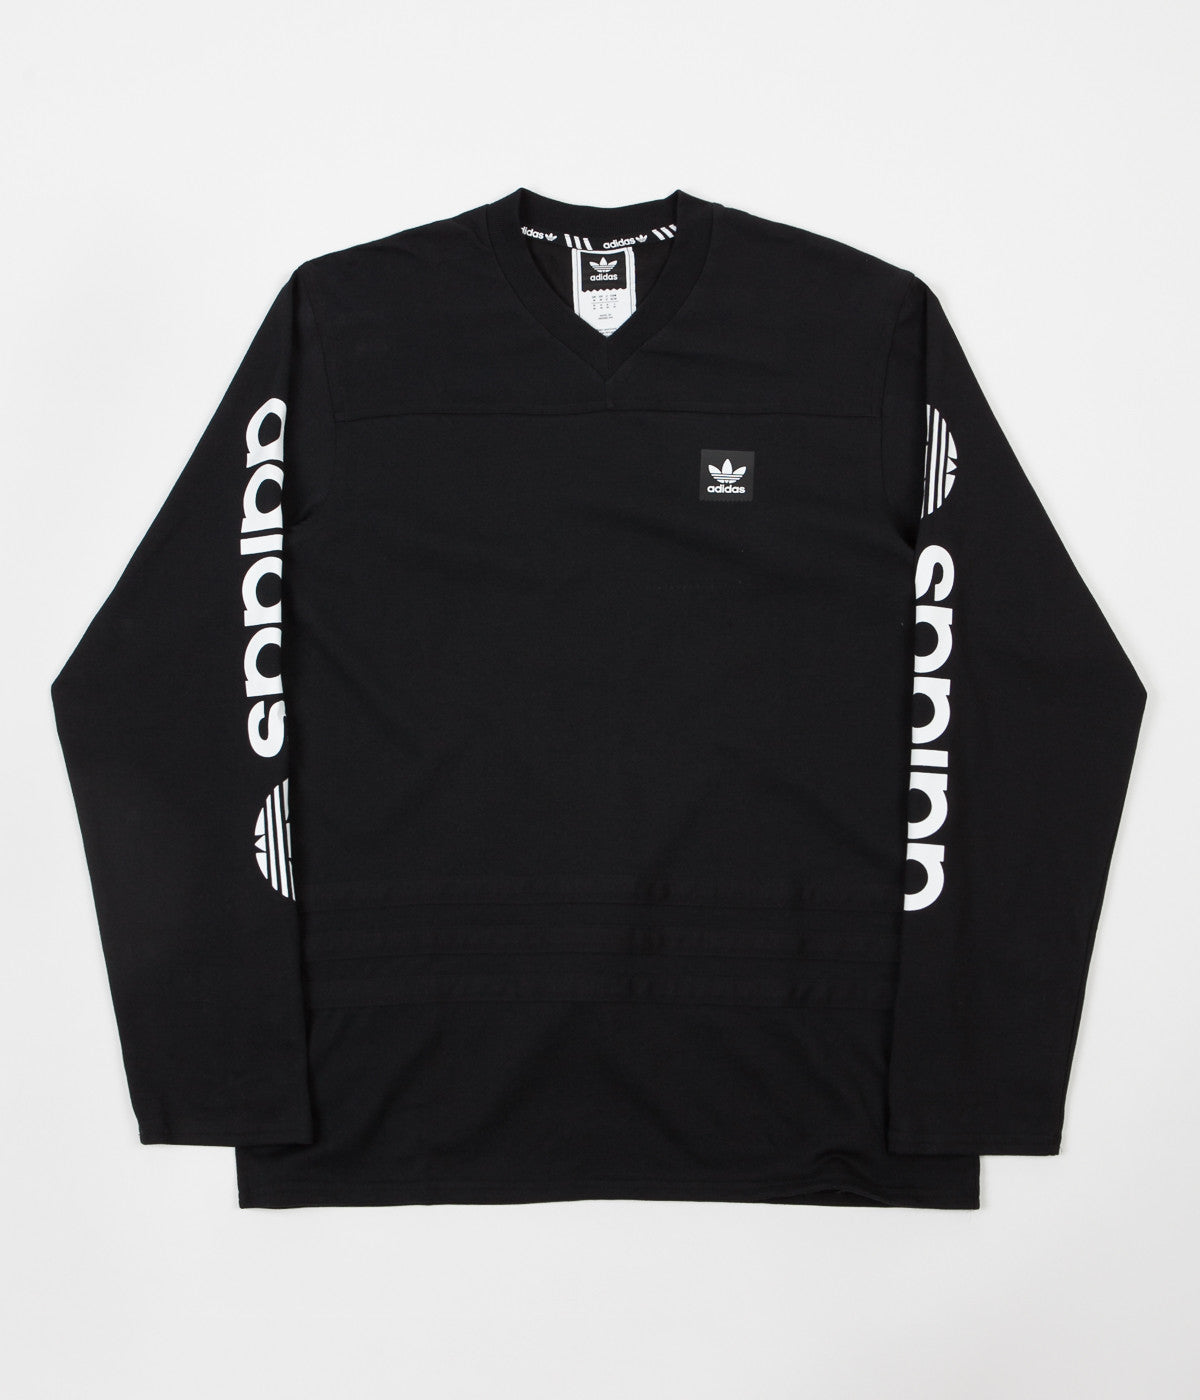 Adidas Rodge 2 Jersey - Black / White